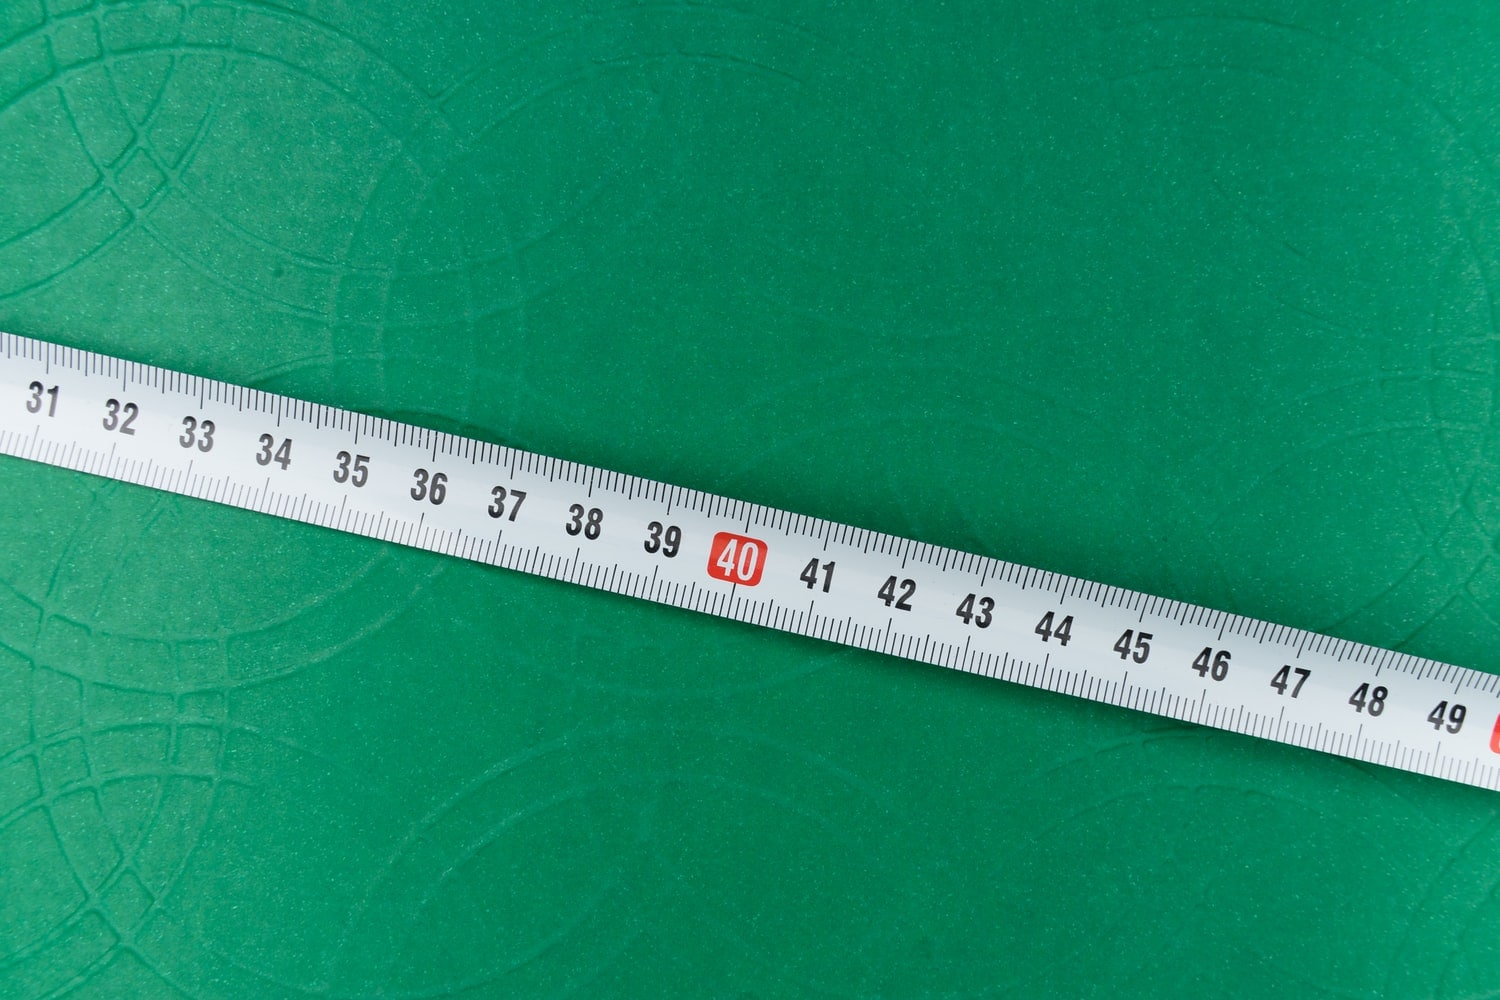 measuring dimensions of IT equipment